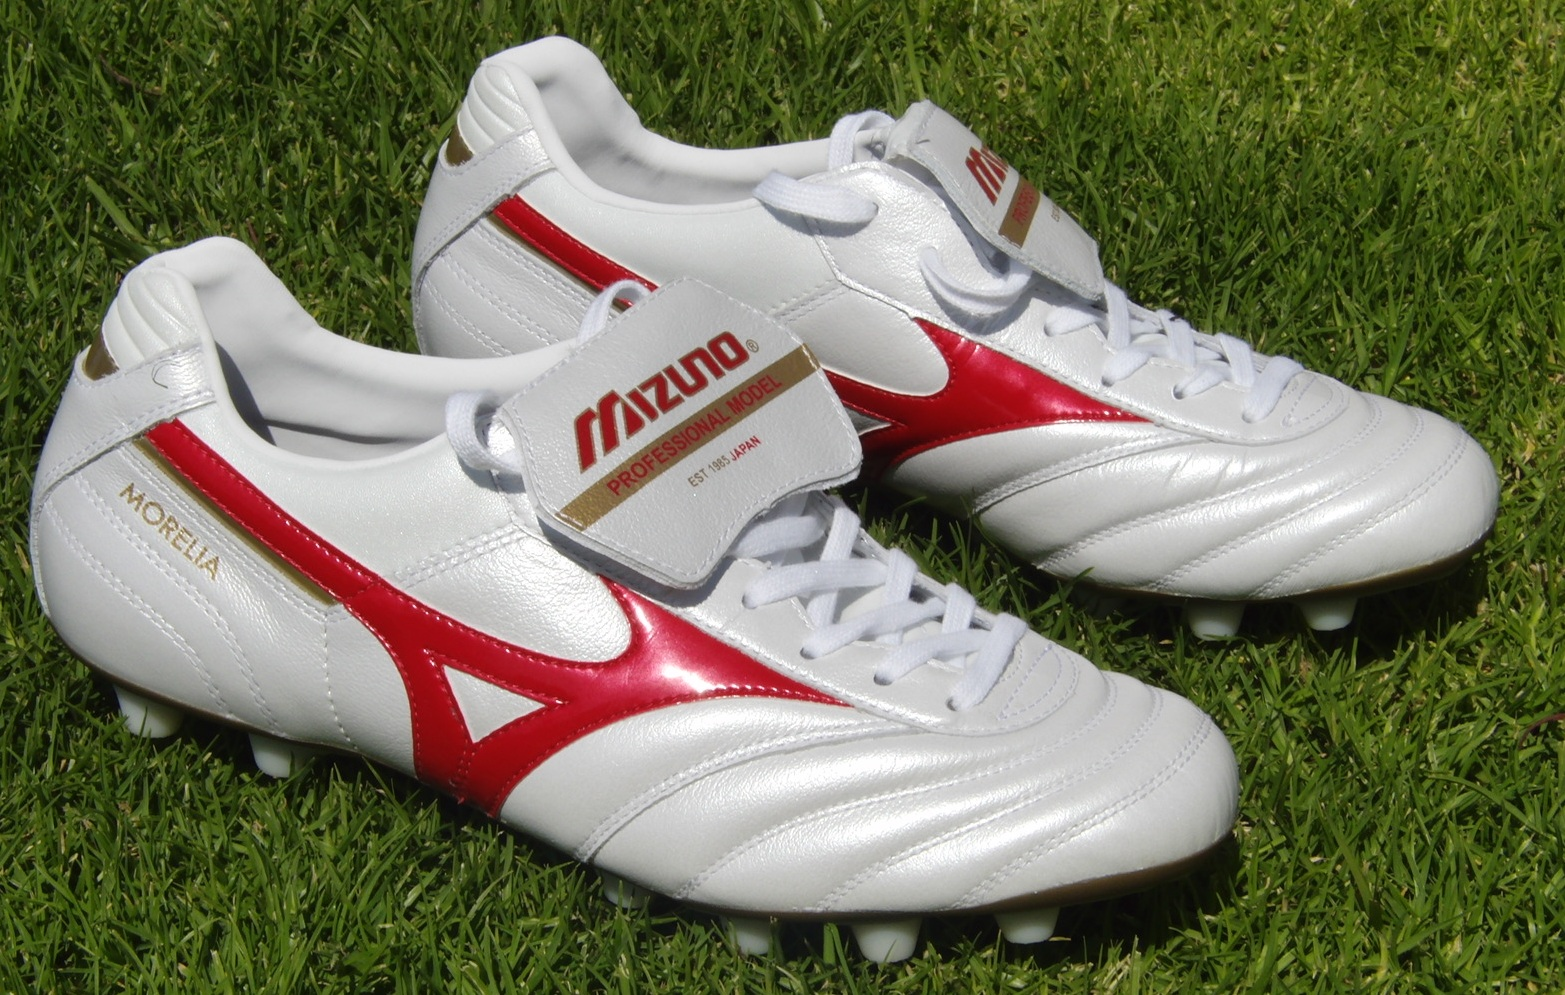 bed39d0b068c Mizuno Morelia Review | Soccer Cleats 101